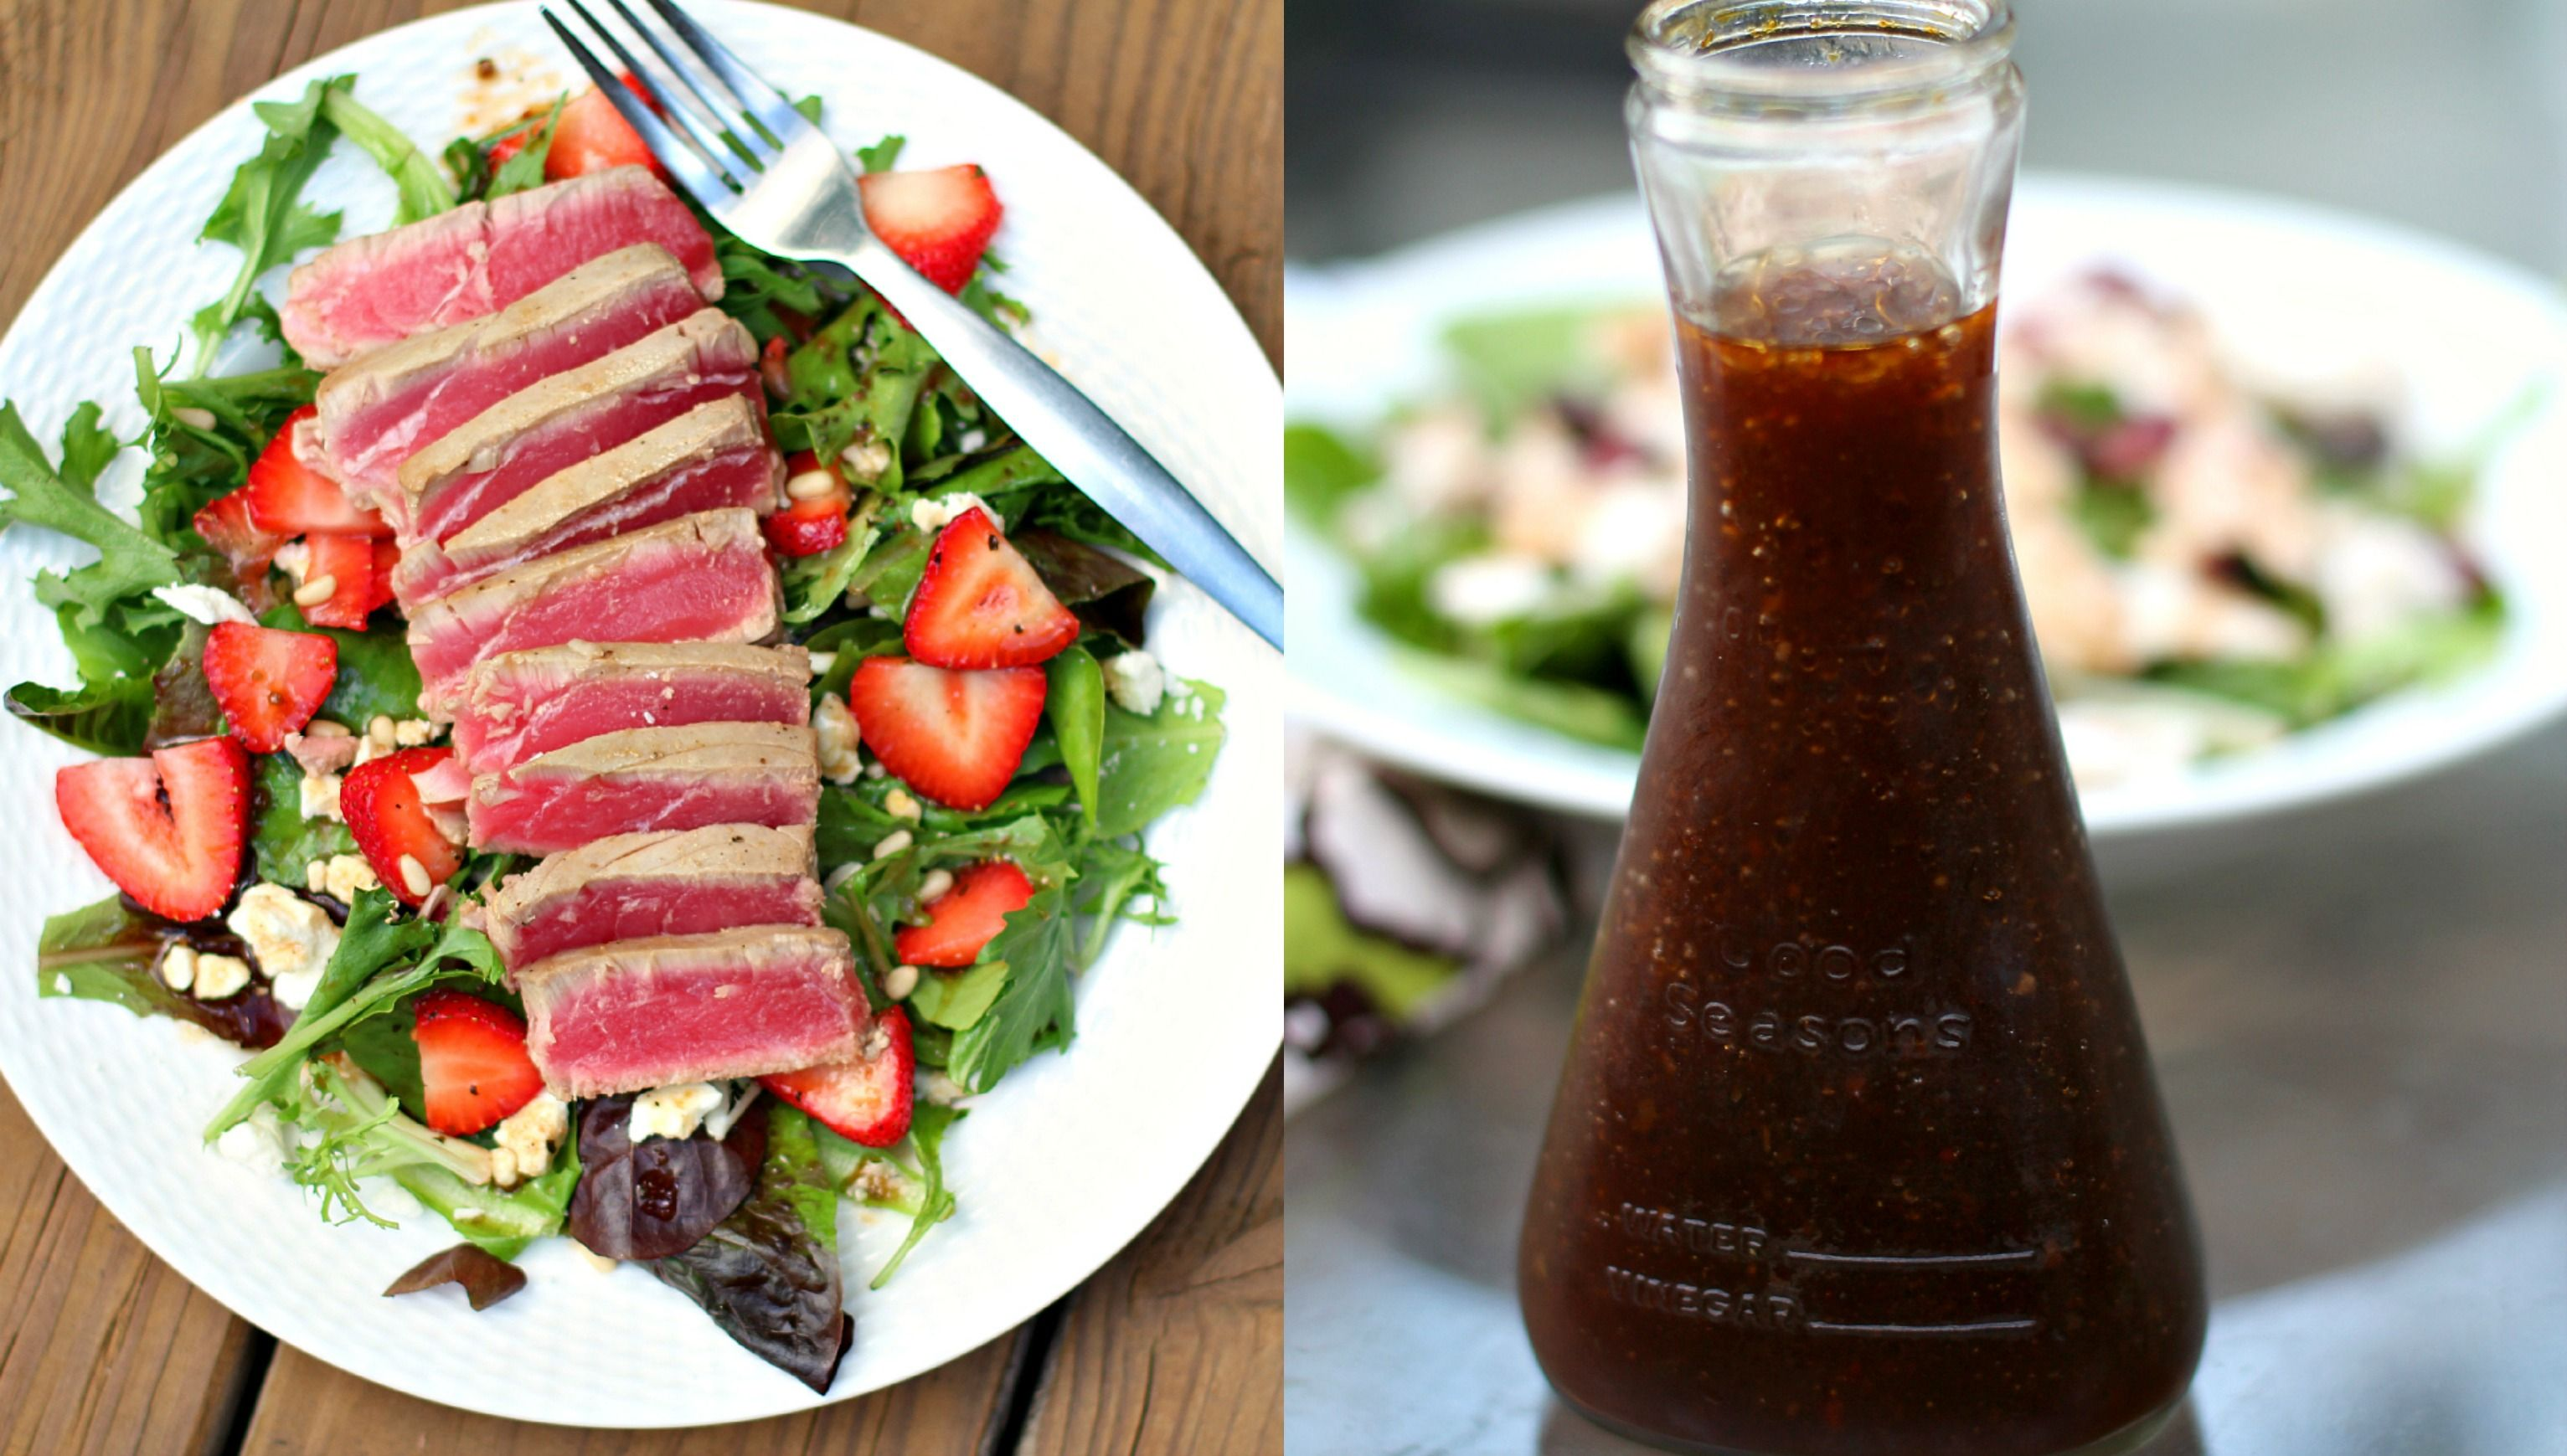 Strawberry Salad with Seared Ahi Tuna and Simple Balsamic Vinaigrette